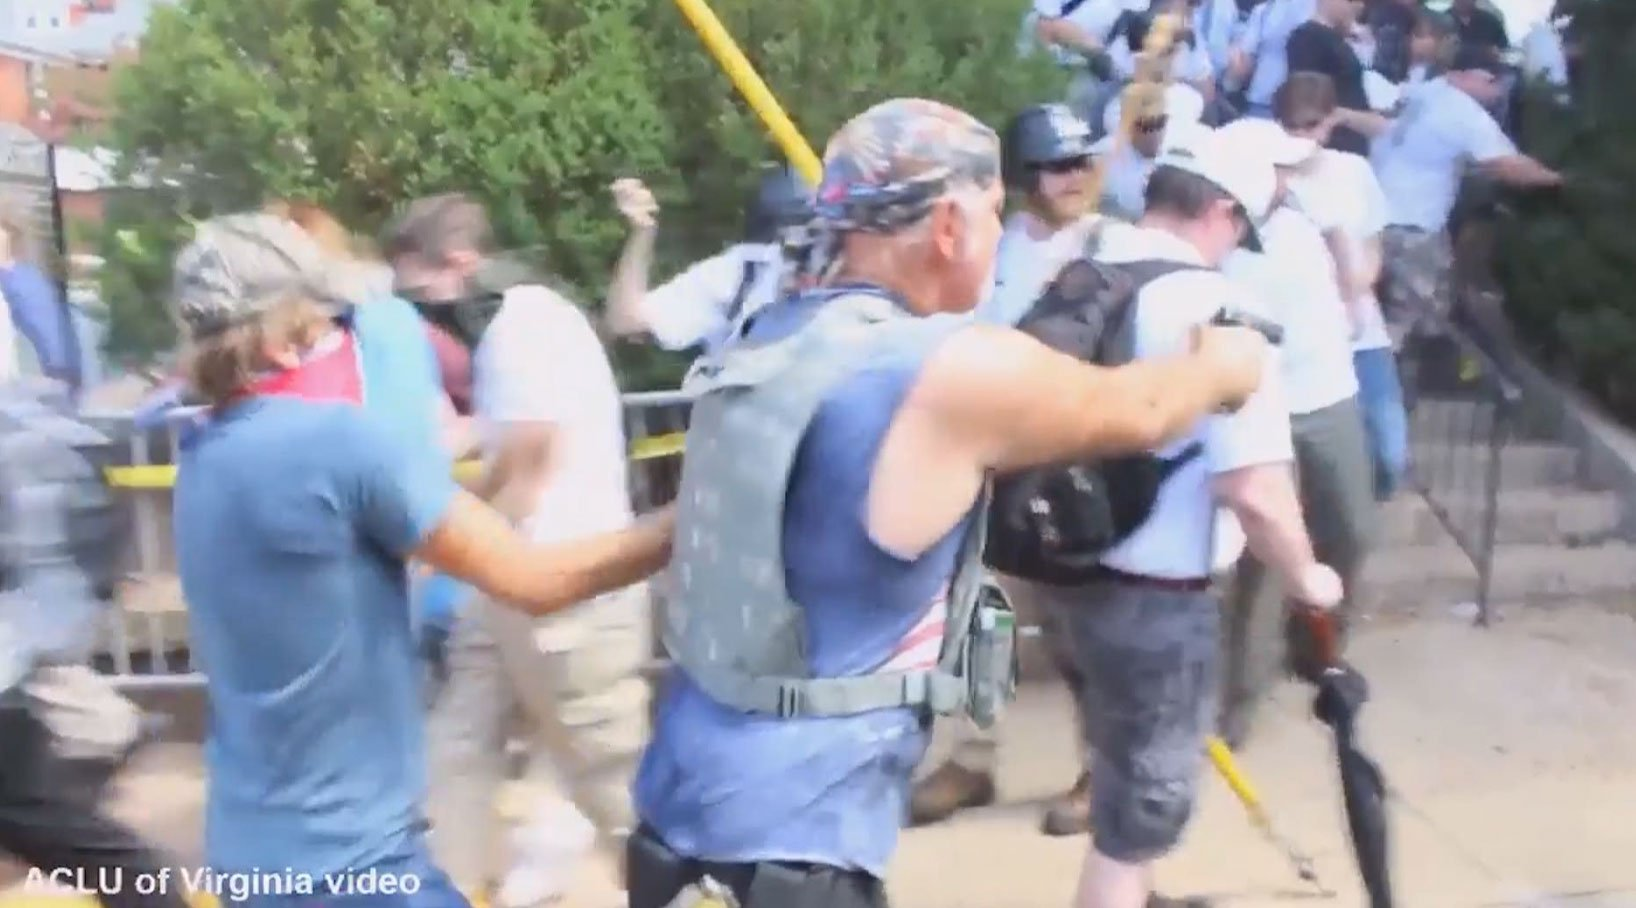 Man believed to be Richard Preston appears to be firing a gun into a crowd at the Unite the Right rally (Image Courtesy ACLU of Virginia)